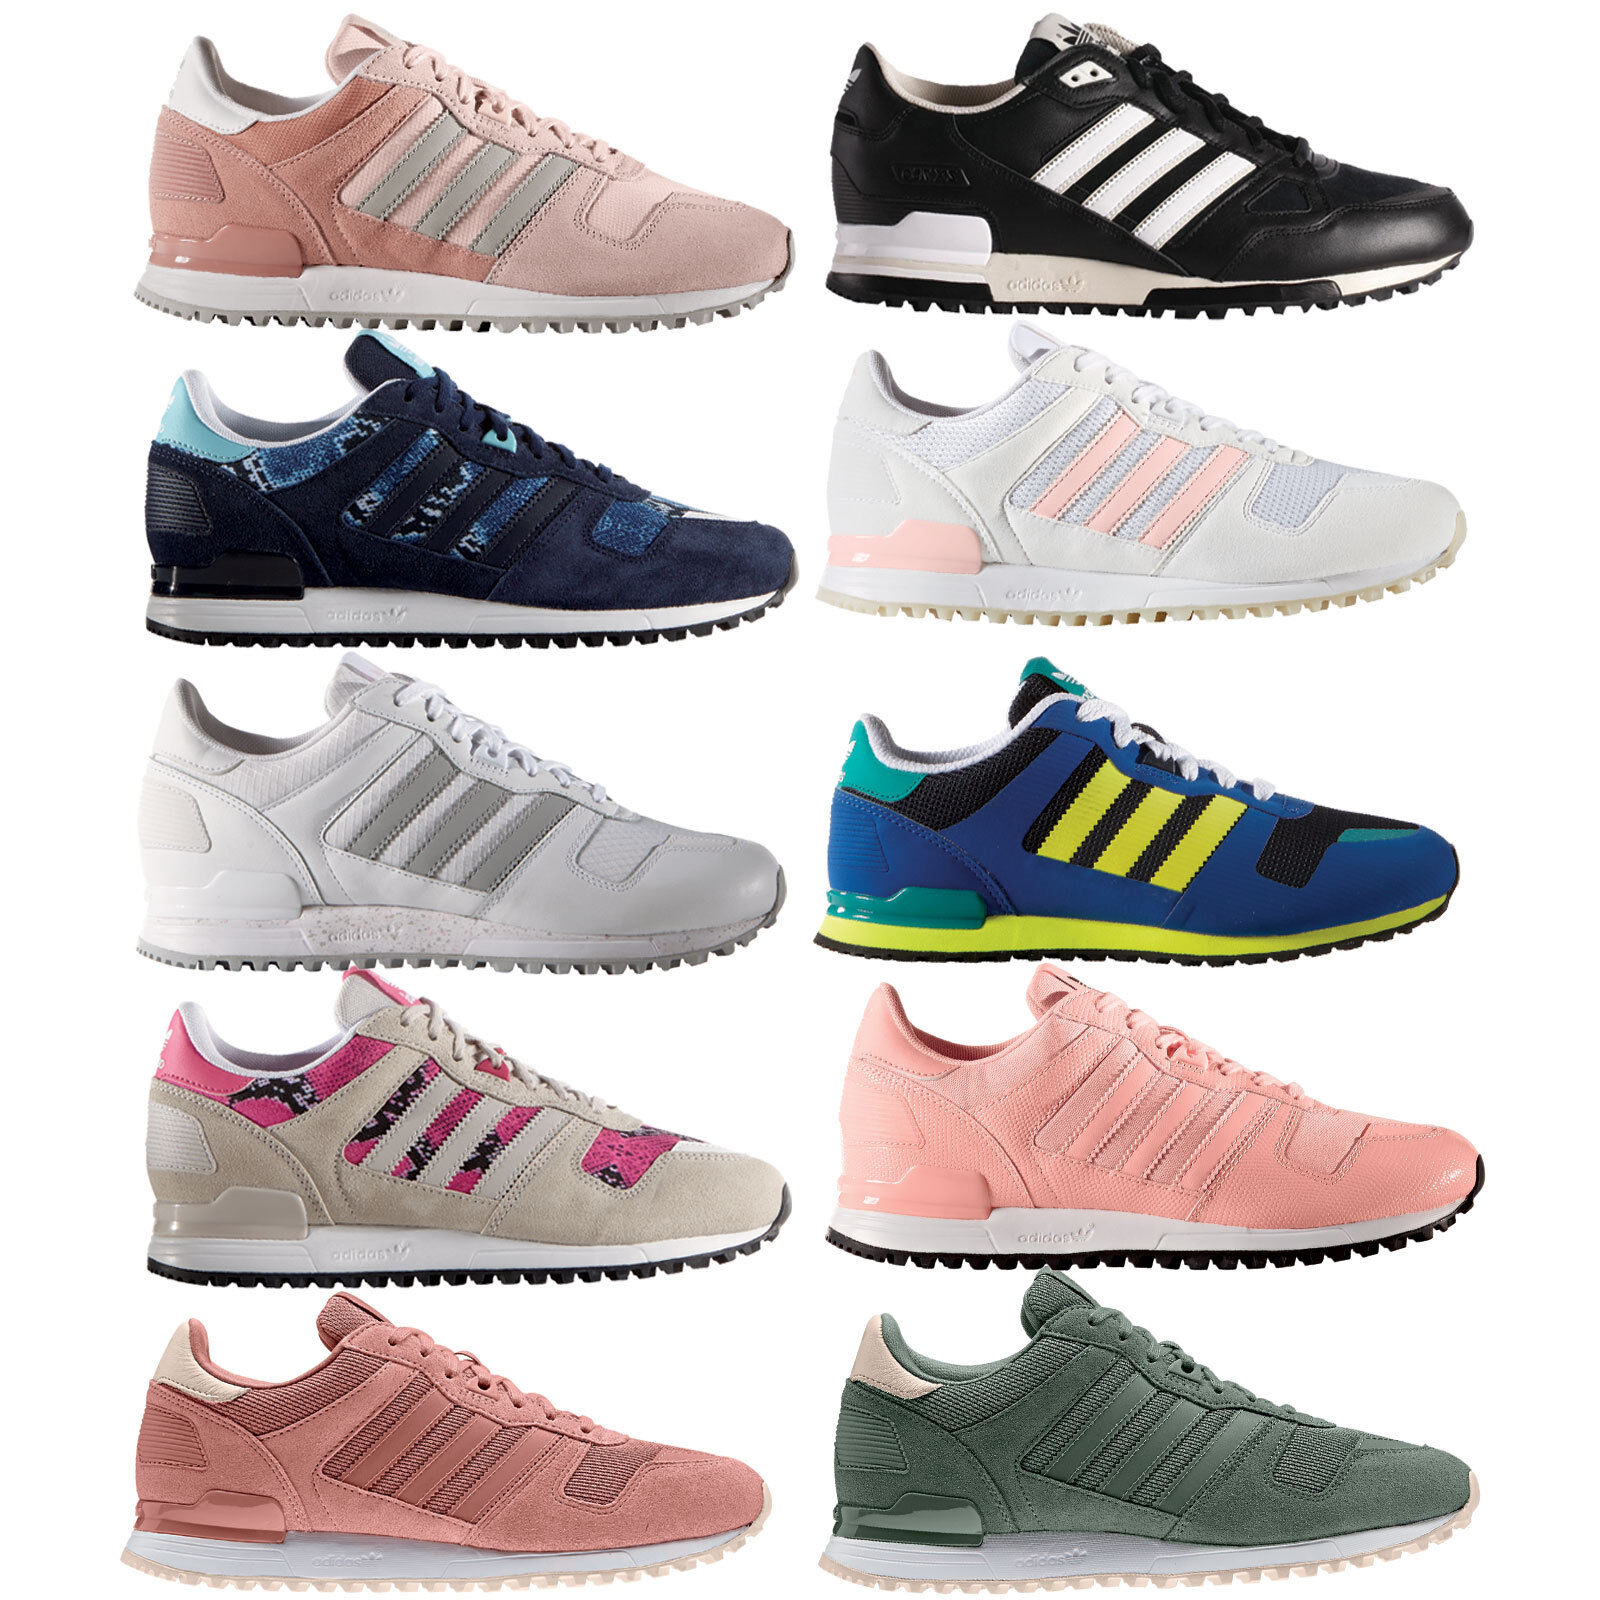 adidas zx 700 trainers pink /white stripes png templates scrapbook